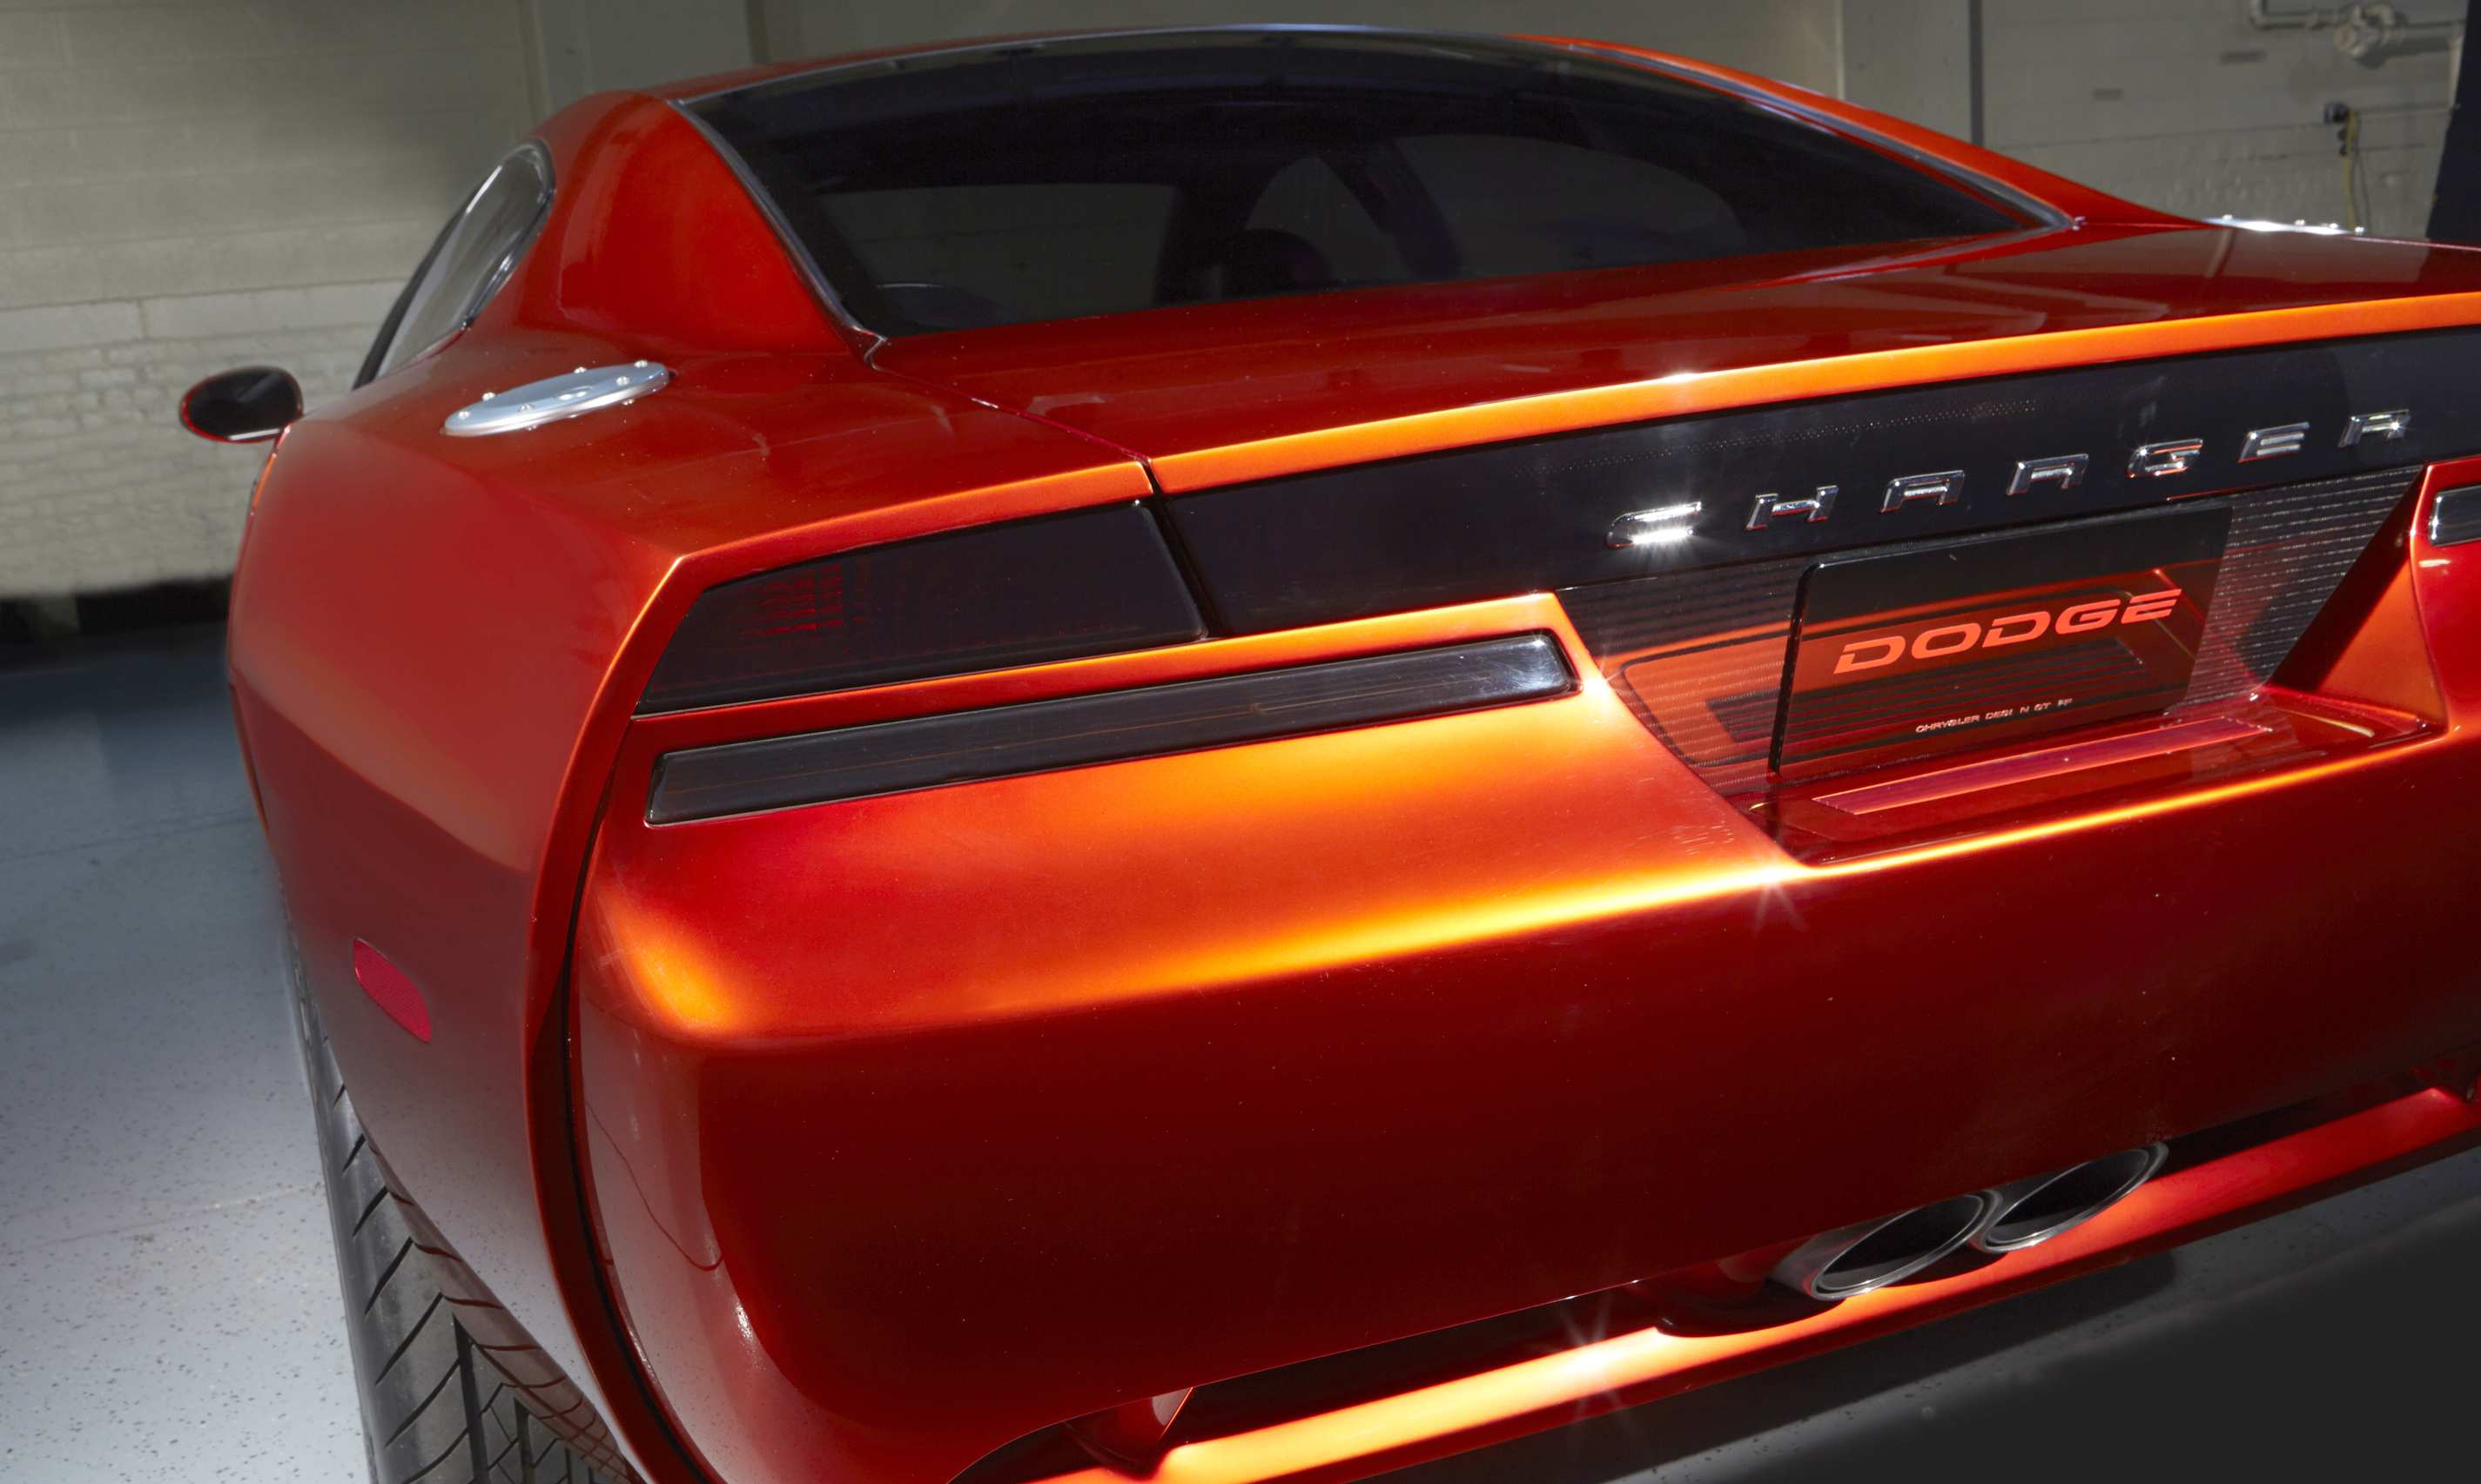 93 All New Dodge Charger Redesign 2020 Picture for Dodge Charger Redesign 2020